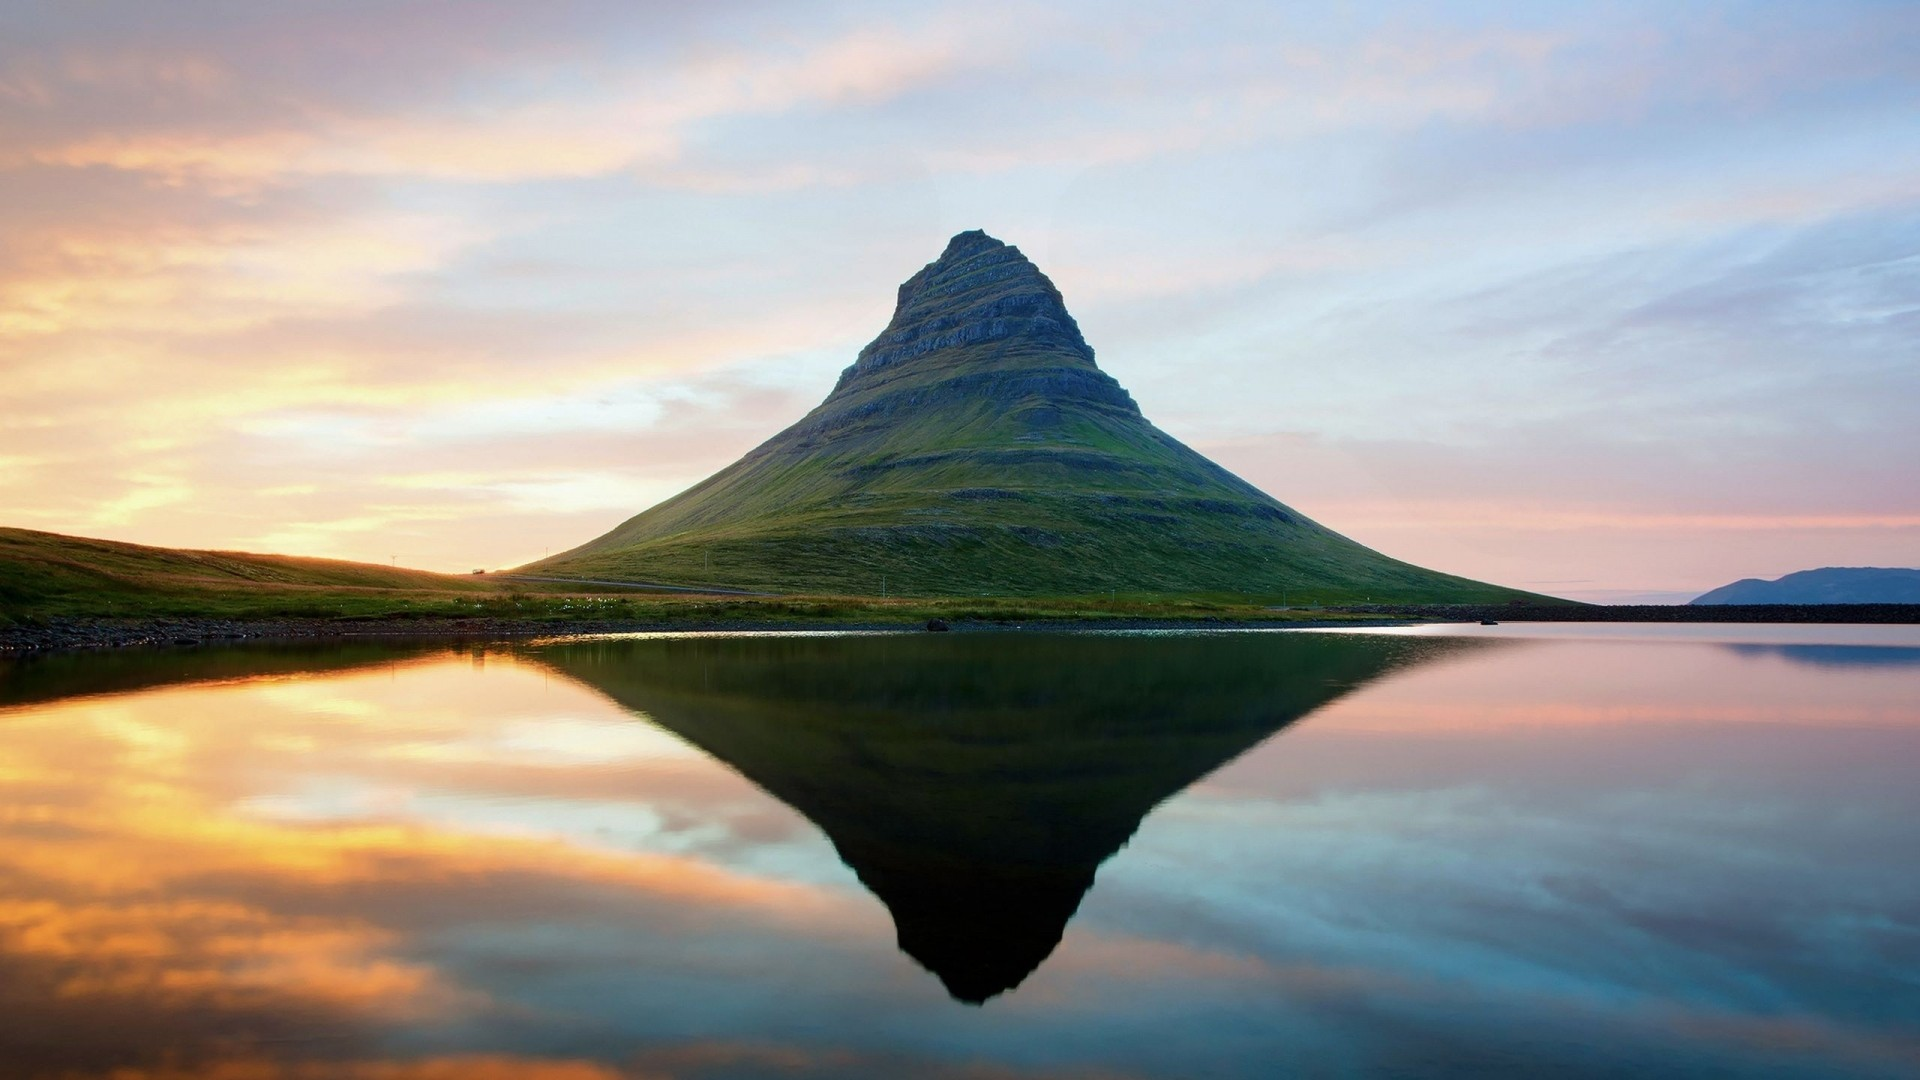 Preview wallpaper iceland, mountains, lake, reflection 1920×1080